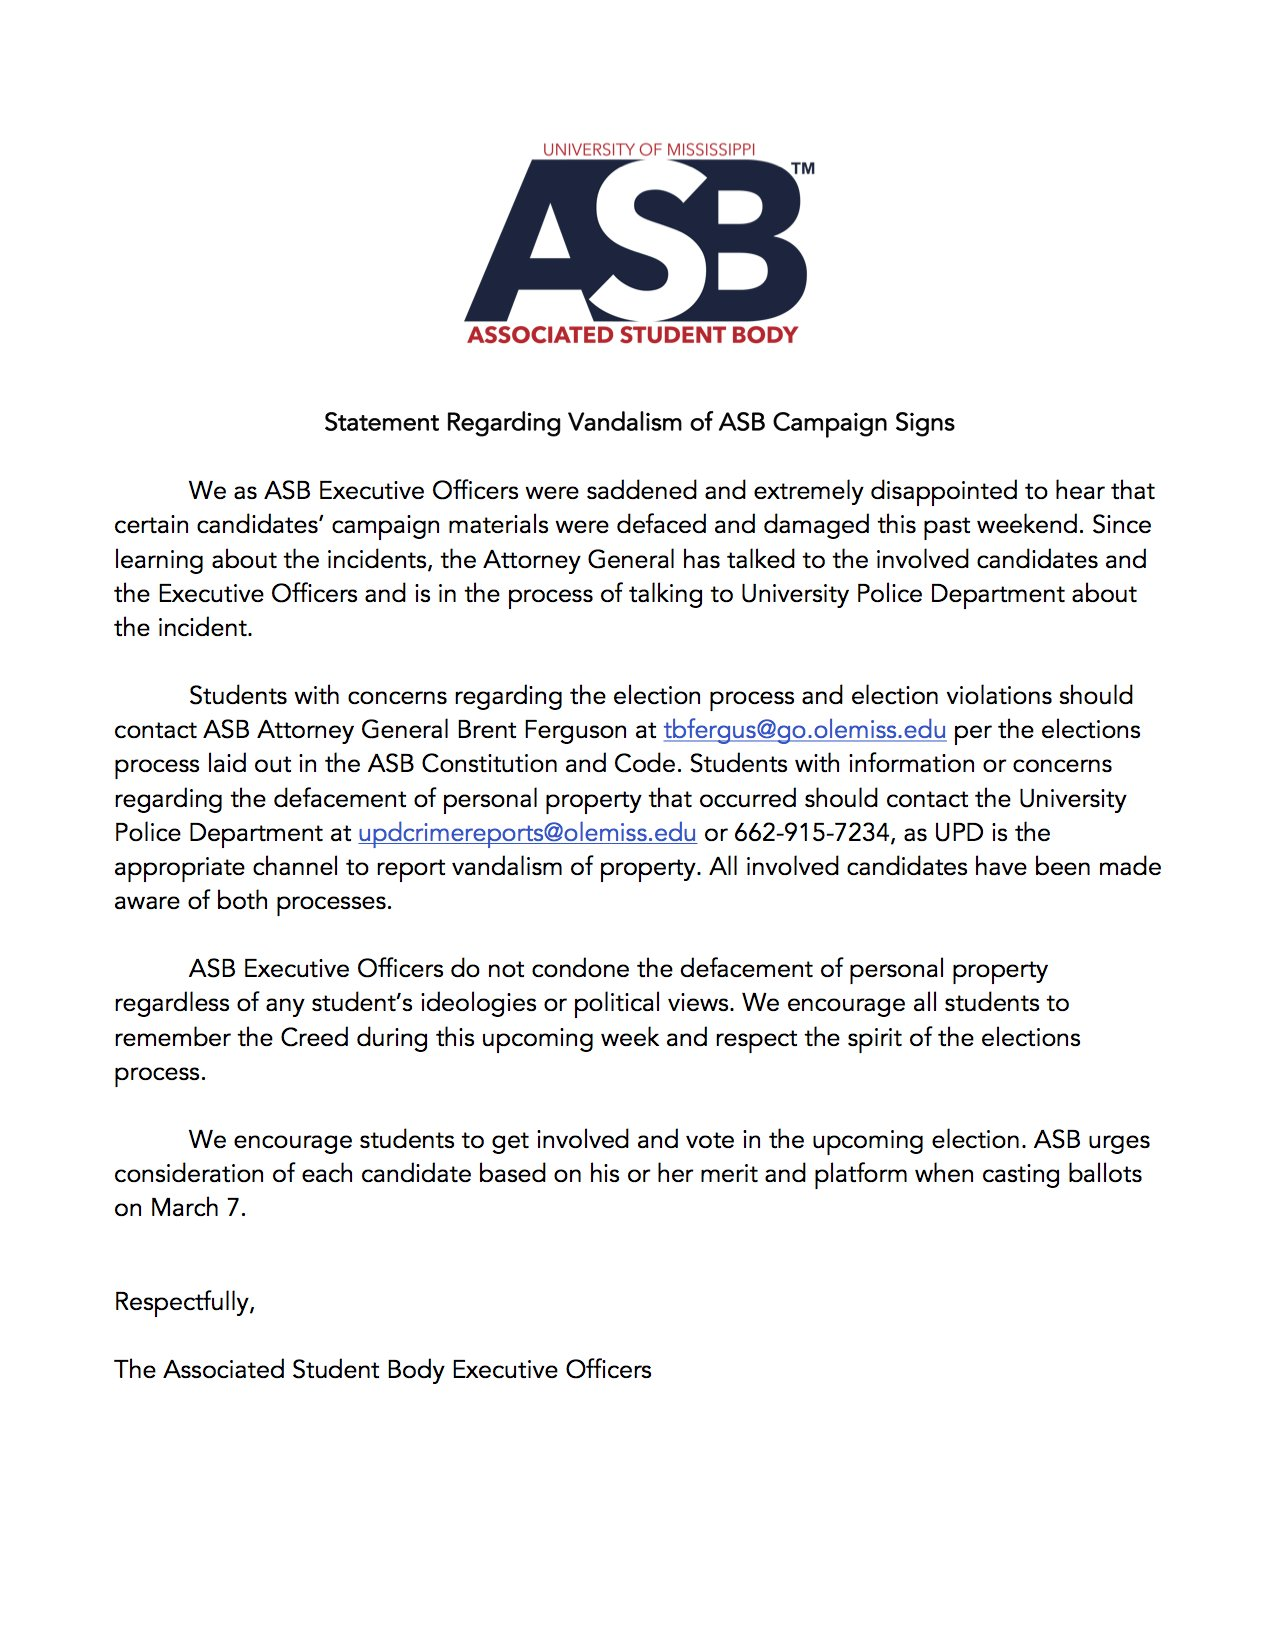 Asb Releases Statement On Campaign Sign Vandalism. Male Gender Signs. Purple Wedding Lettering. Motorcycle Tank Decals. Jackson Ward Murals. Mary Blair Murals. Dean Logo. Batman 1989 Logo. Classical Greek Lettering